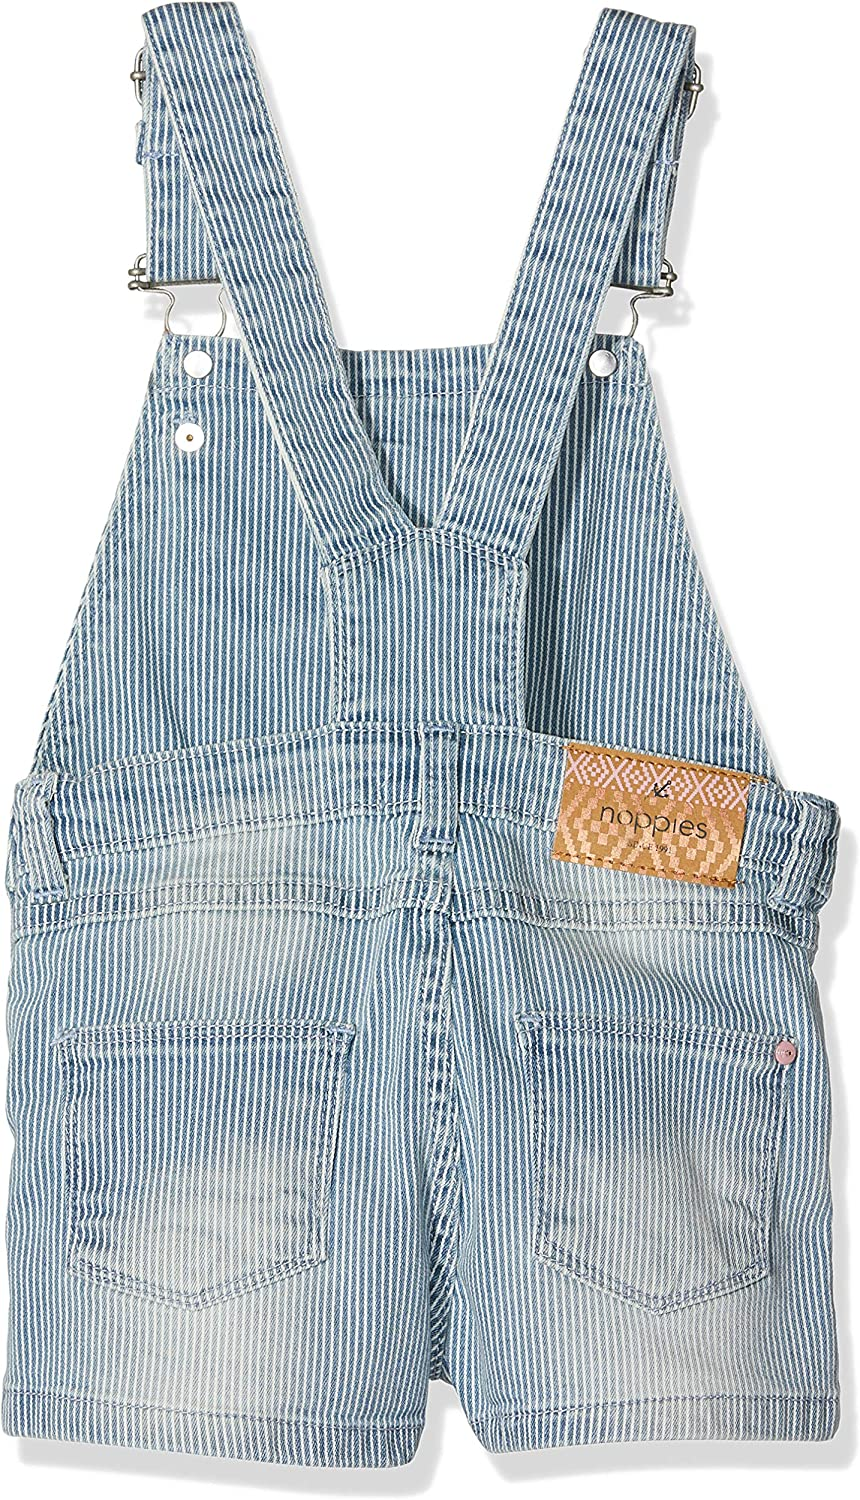 Noppies Girls G Dungaree Short Rock Island